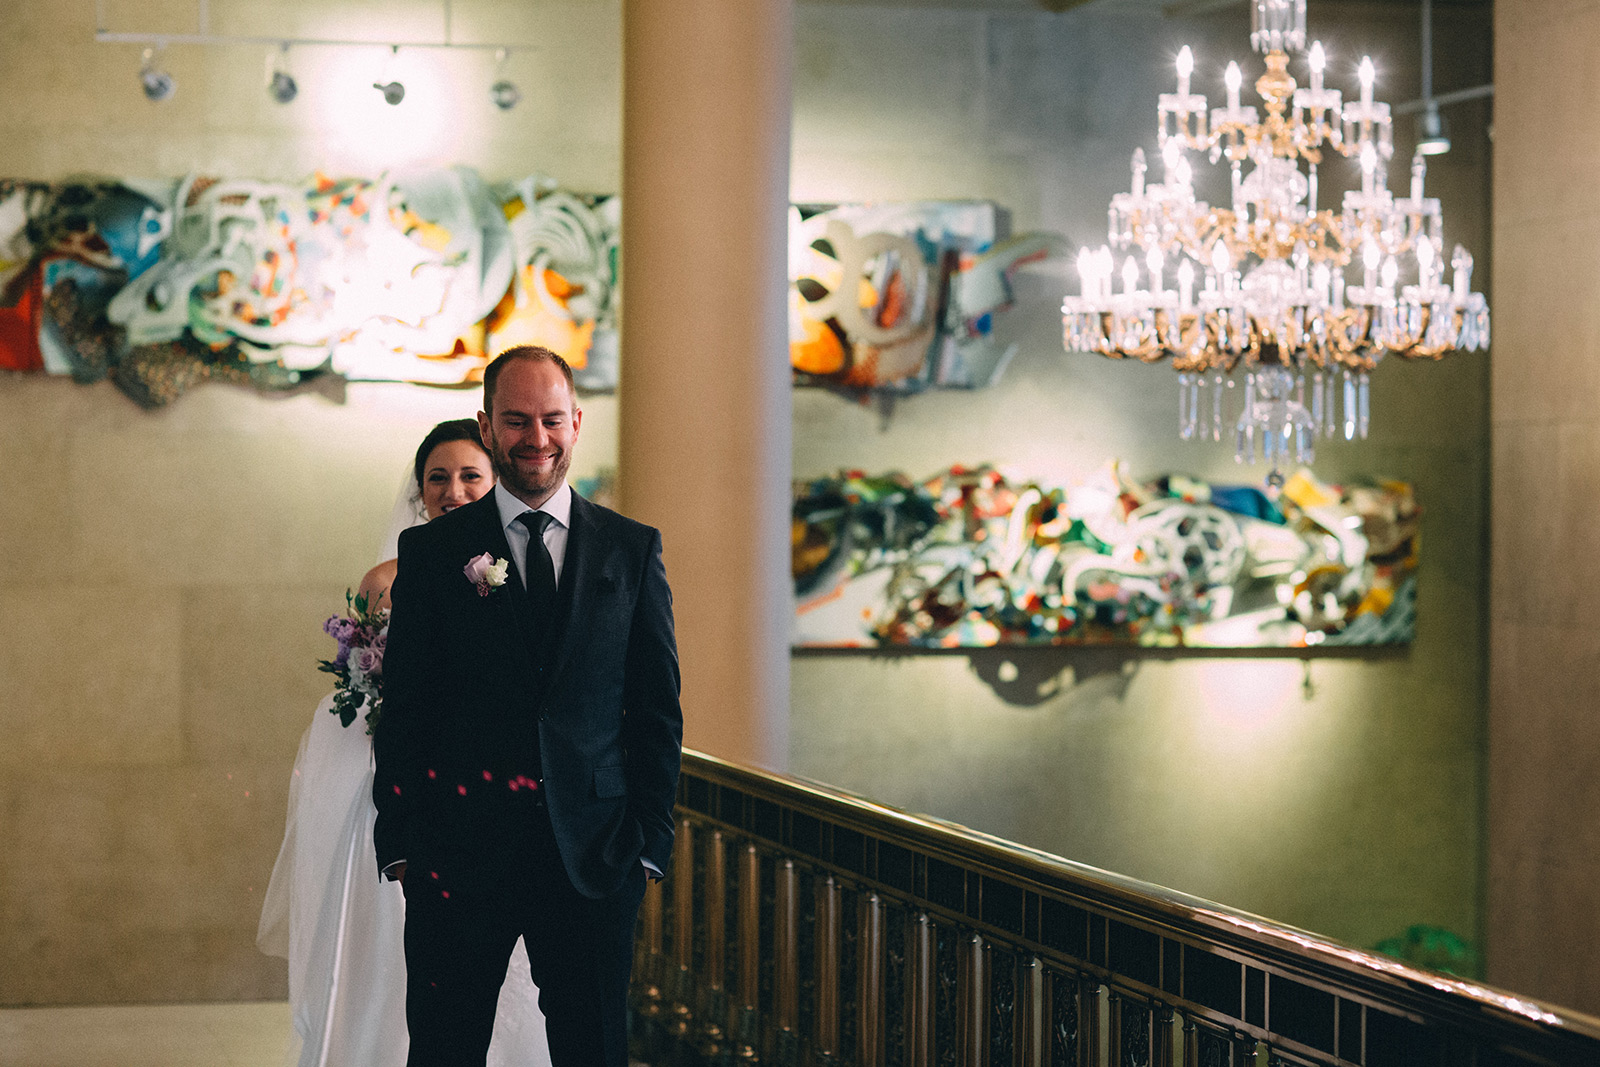 One-King-West-Toronto-wedding-photography_Sam-Wong-of-Visual-Cravings_KnR-11